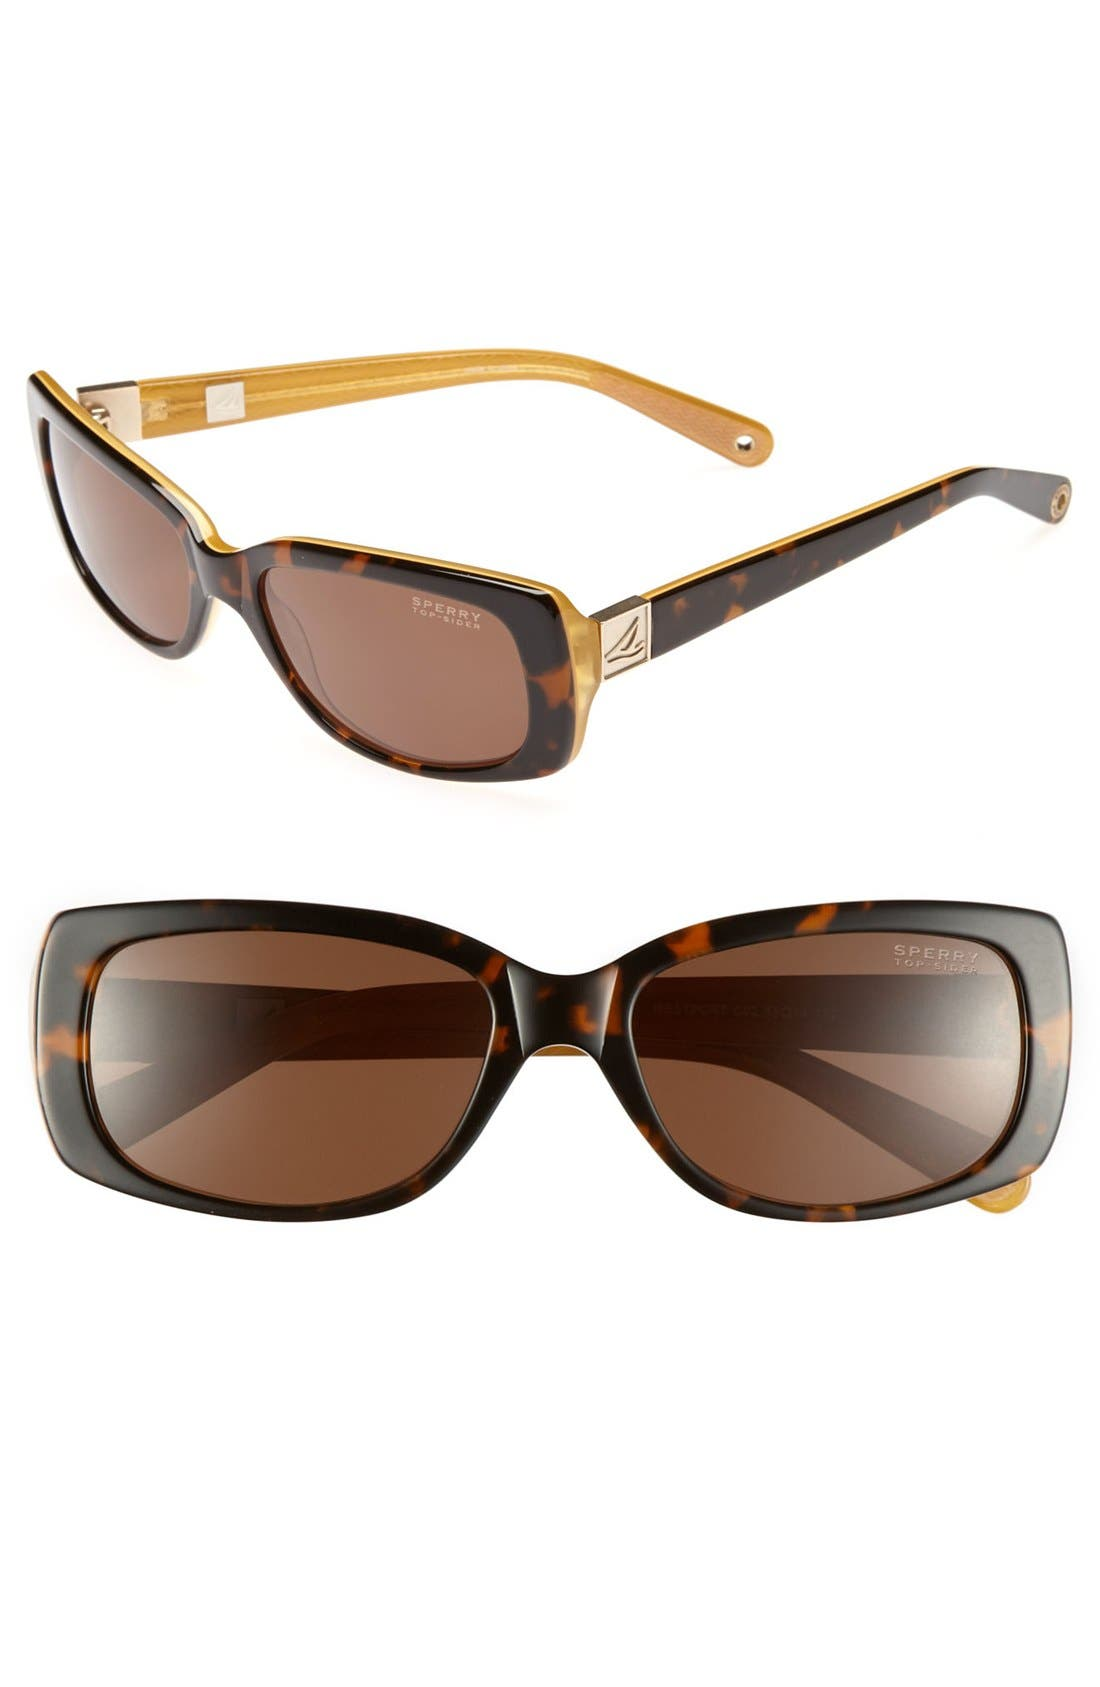 Main Image - Sperry Top-Sider® 'Westport' 55mm Sunglasses (Online Only)